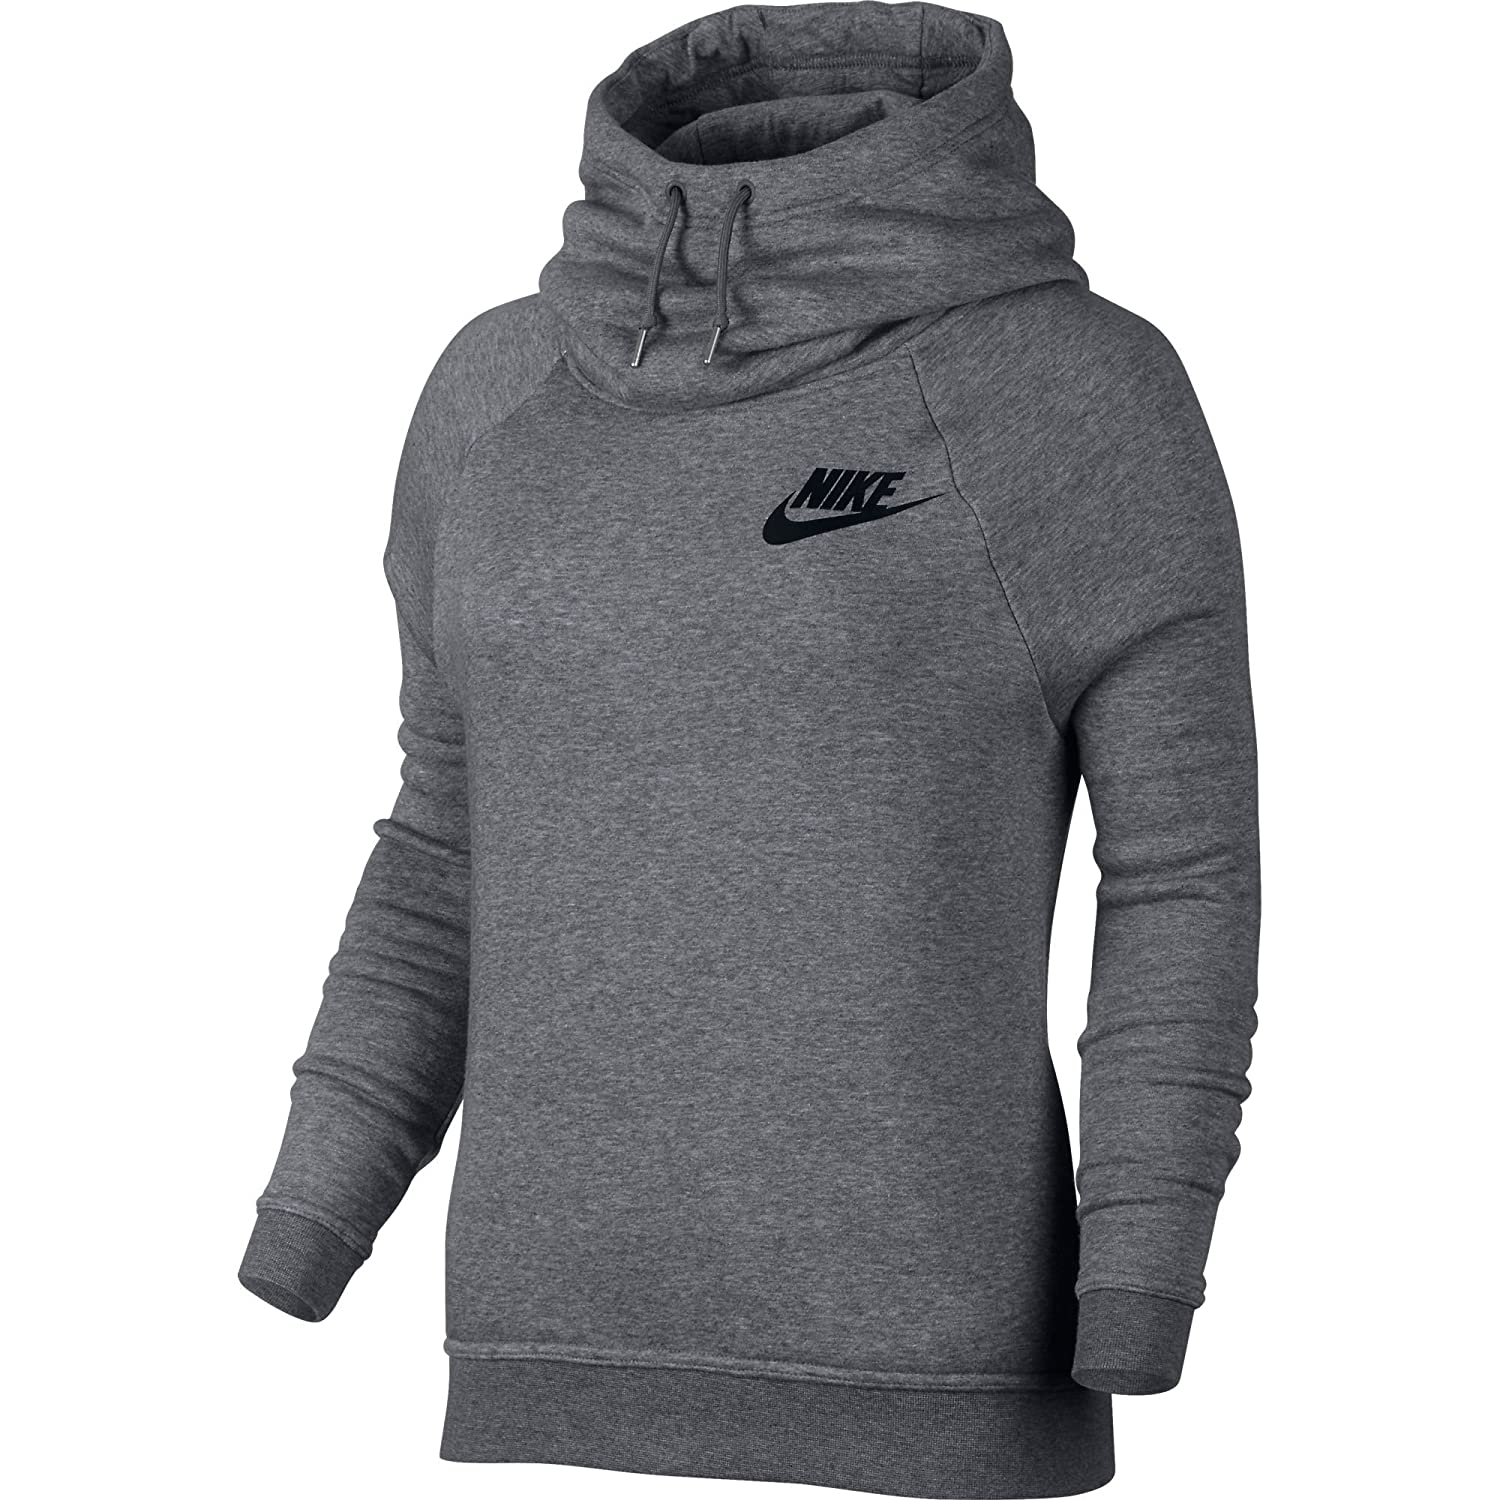 Nike Sweater Turtleneck